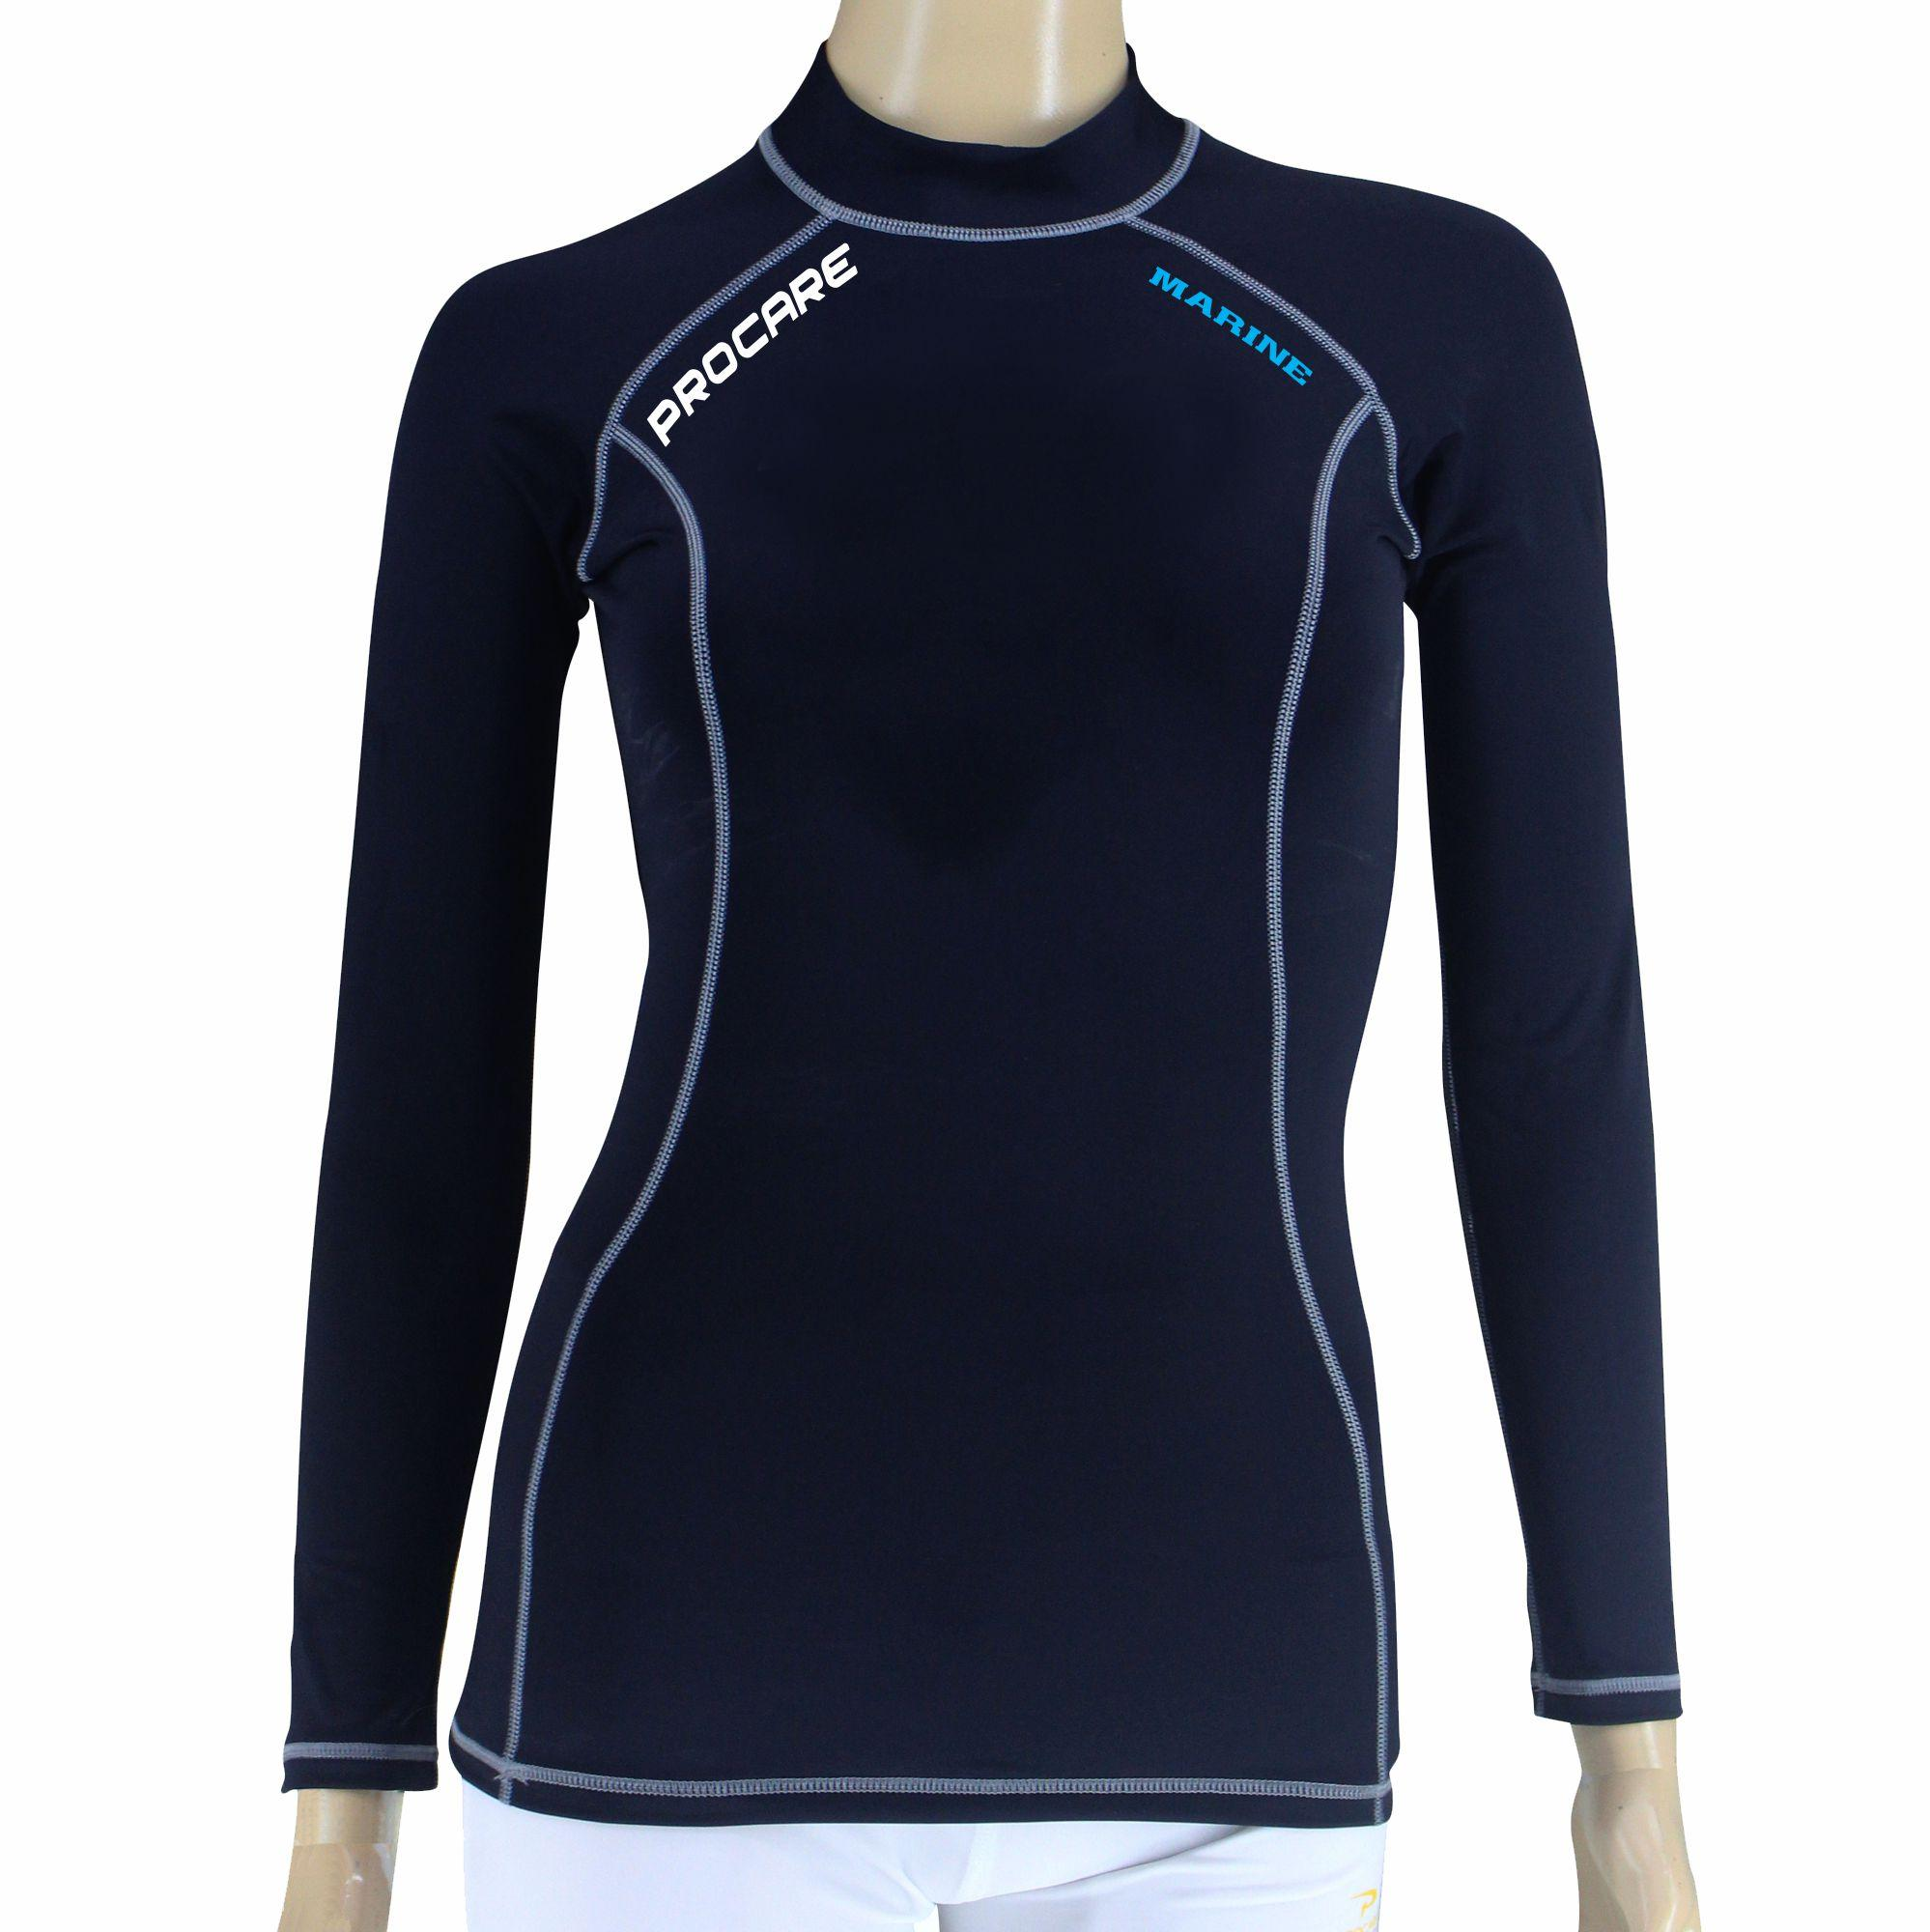 Winmax Uv50 Protection Long Sleeves Diving Suit Shirt Lycra L 873 Cloudy Kimono Lingerie Php 665